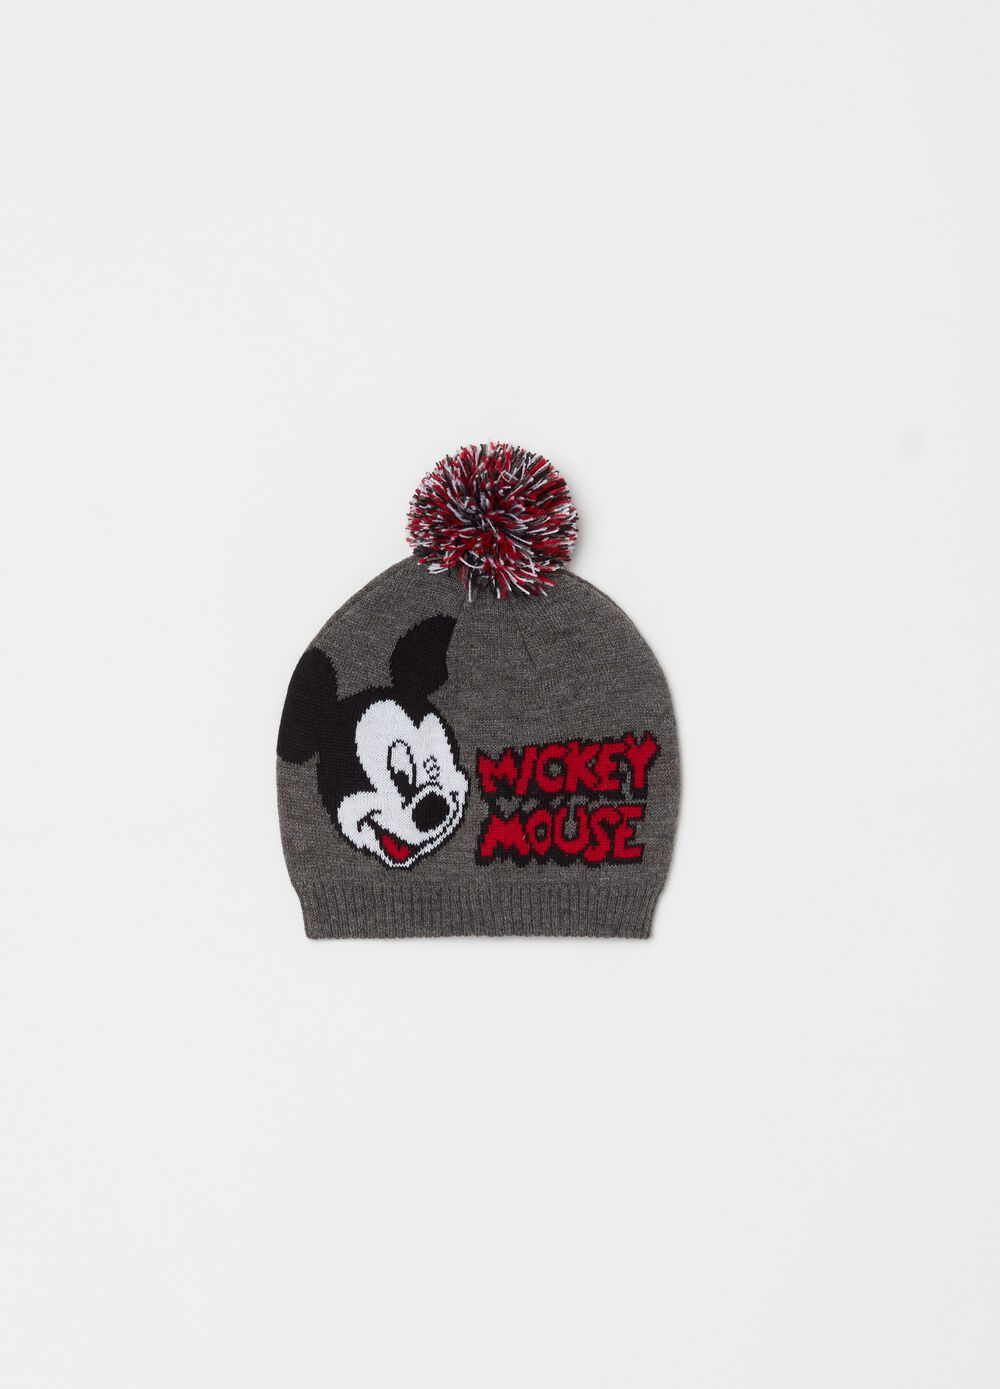 Knitted mélange Disney Mickey Mouse hat